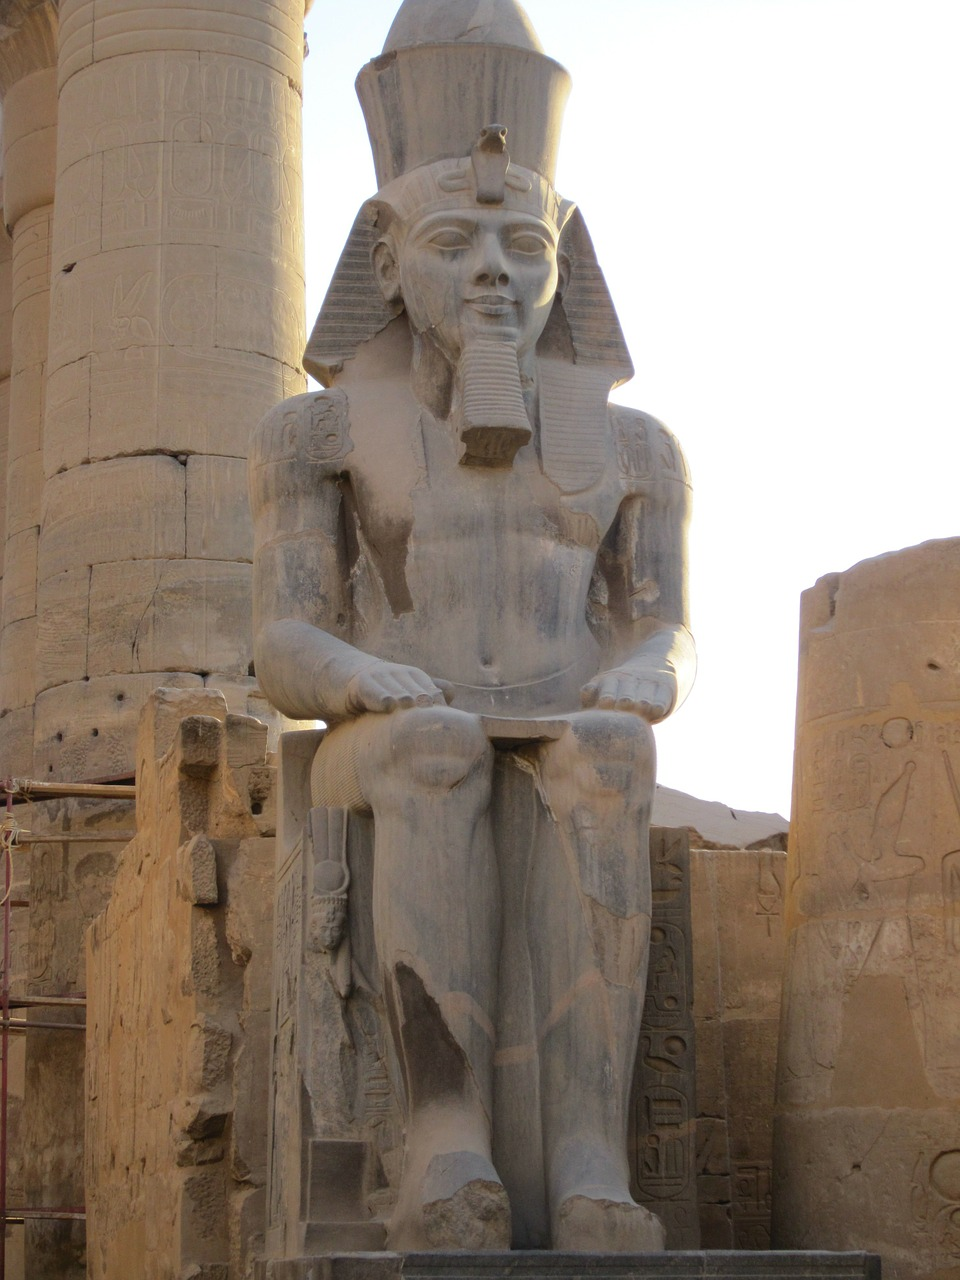 luxor egypt pharaonic free photo